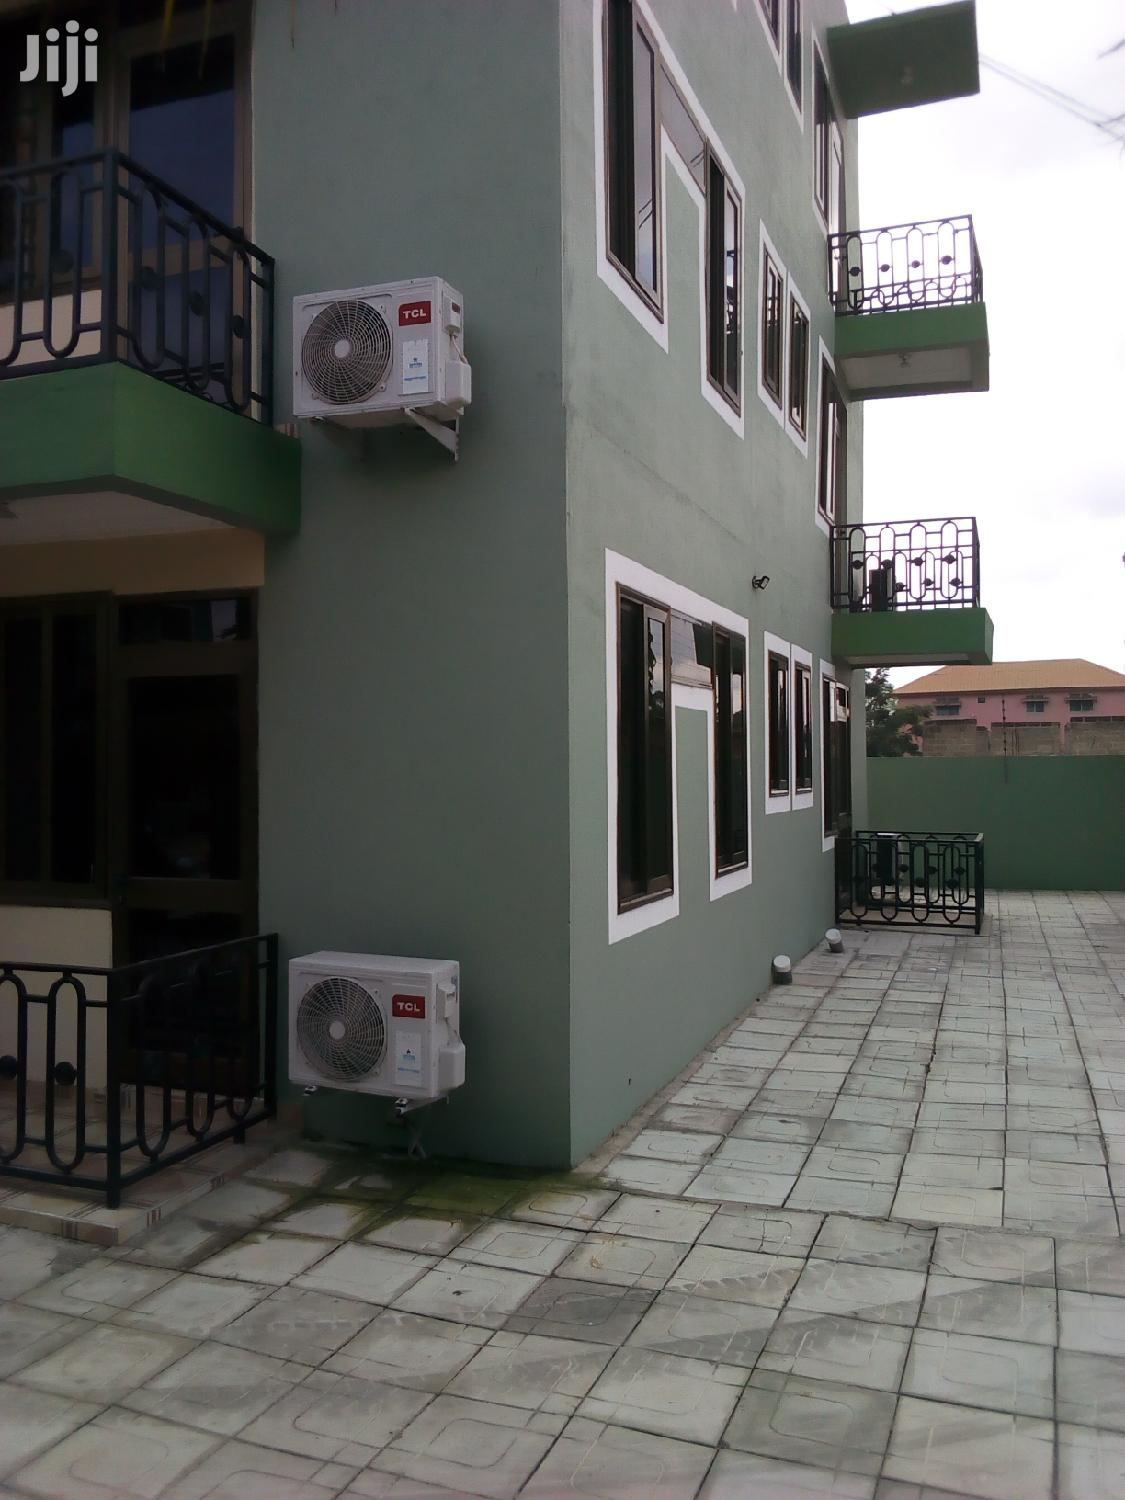 Powerful 2 Bedrm Duplex for 6 Months Rent Kasoa Toll Booth